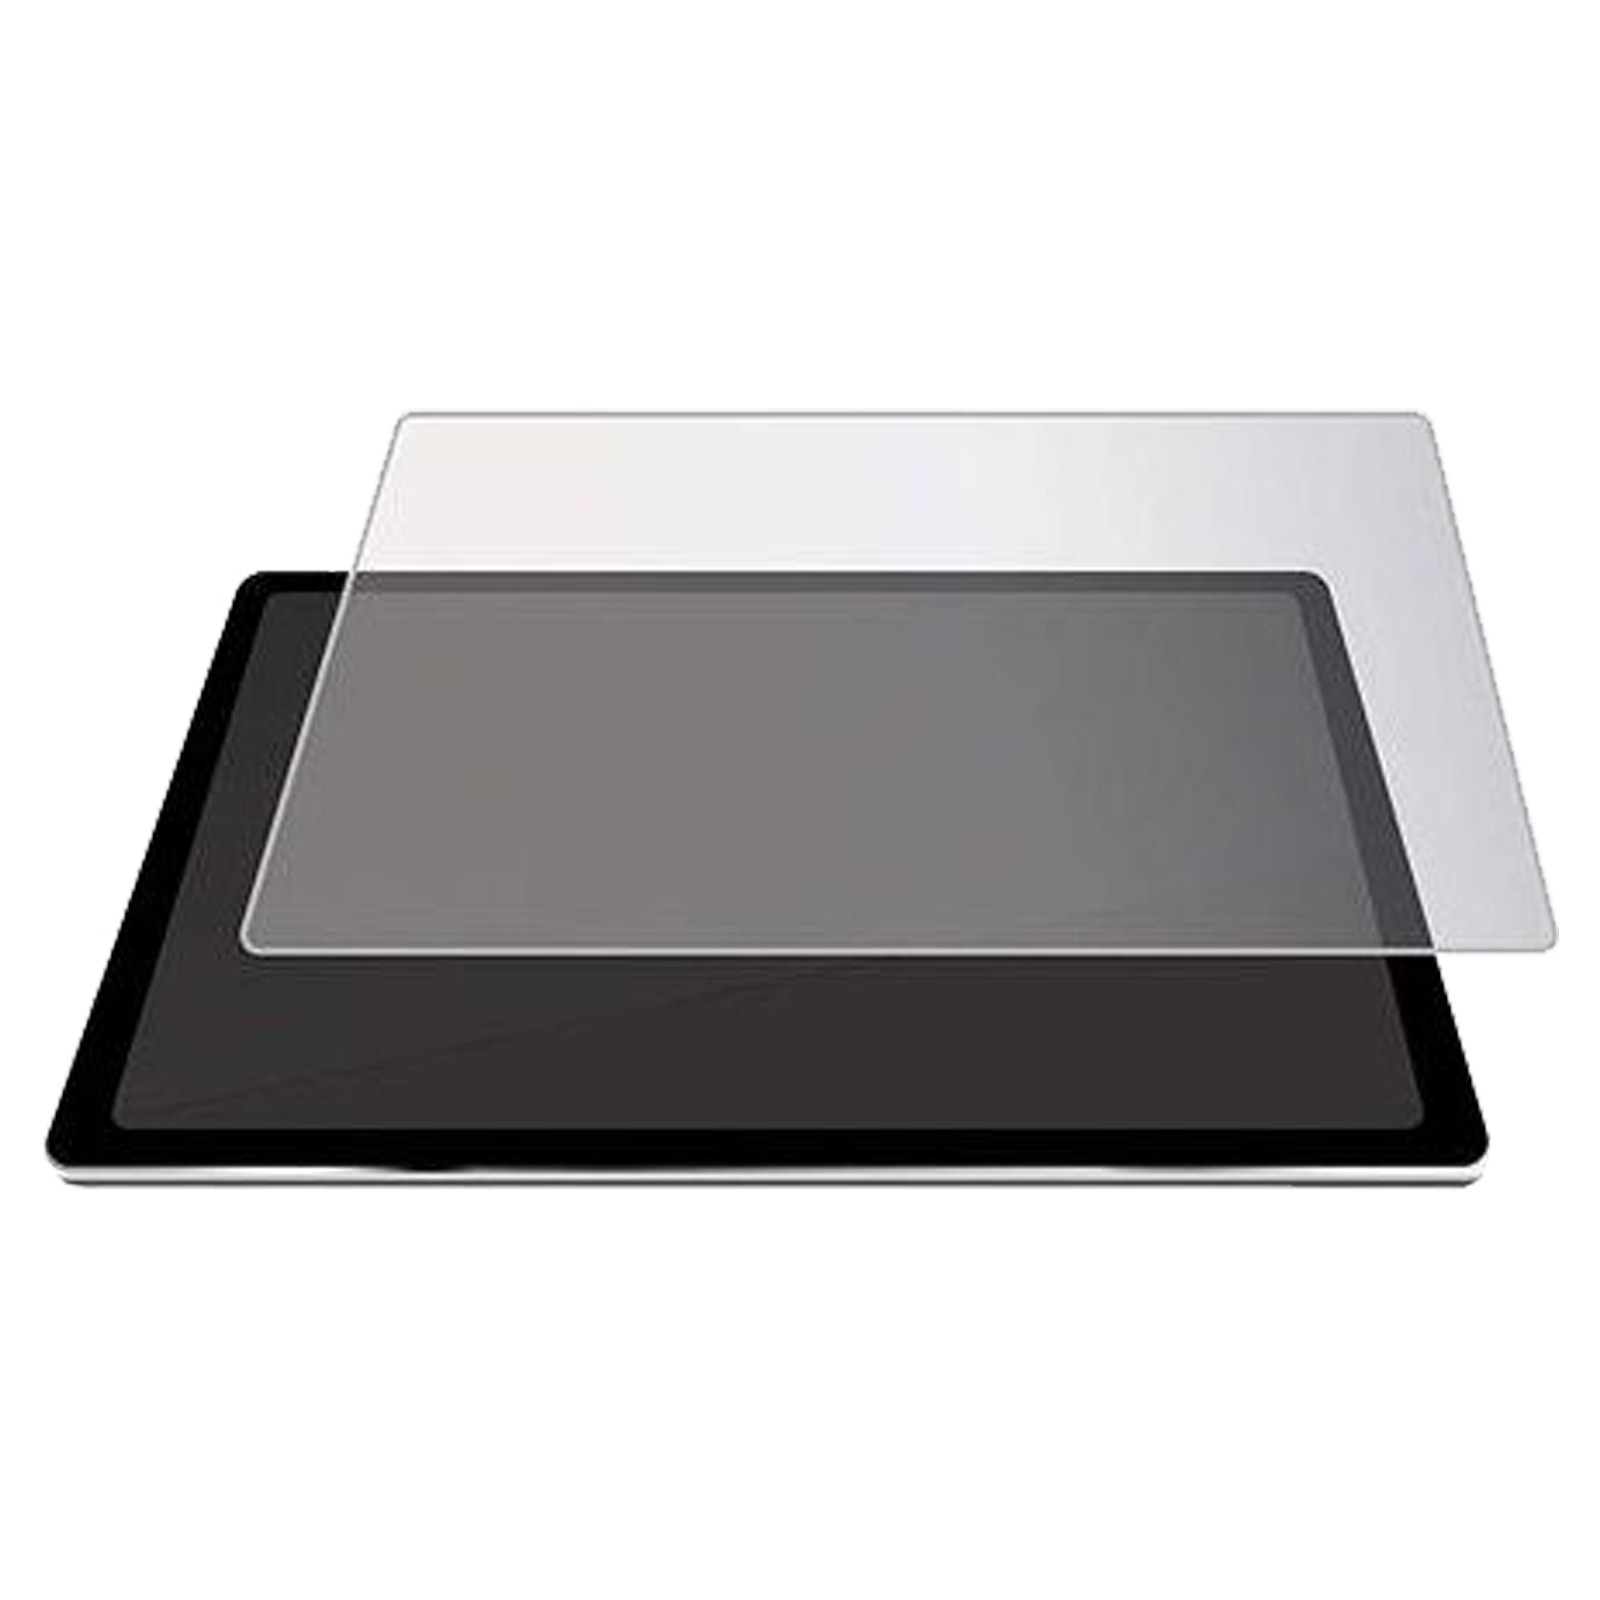 STM Tablet Screen Protector For Apple iPad Pro 12.9 Inch (Smooth Chamfered Edges, STM-233-241LZ-01, Clear)_1